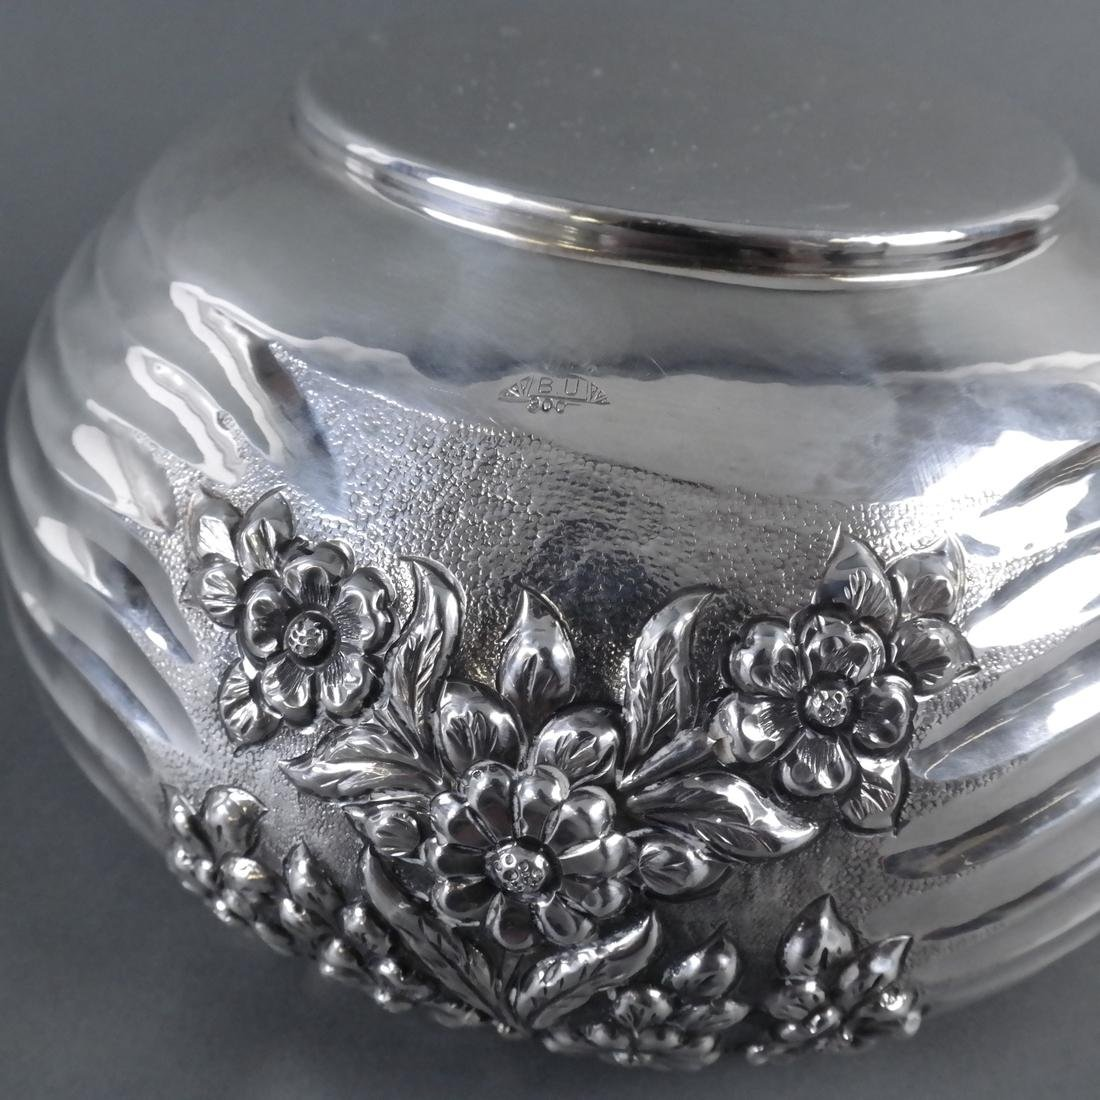 .900 Standard Silver Chased Foliate Bowl - 6